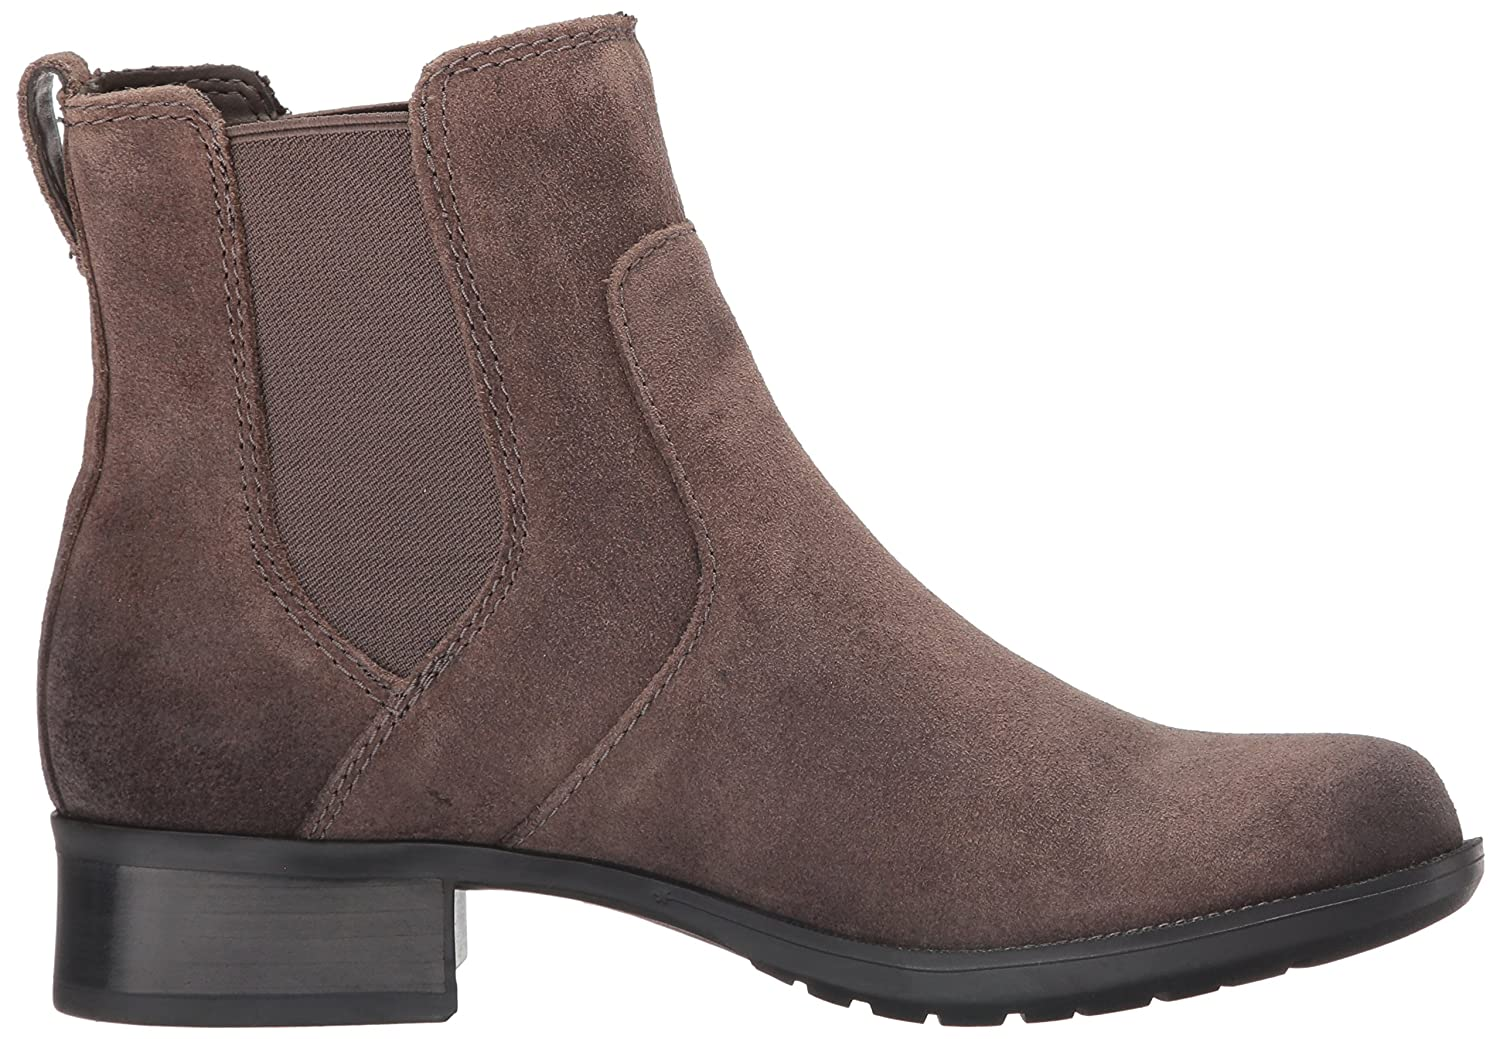 Rockport Cobb Hill Womens Christine Chelsea Boot, Grey, 8 M US